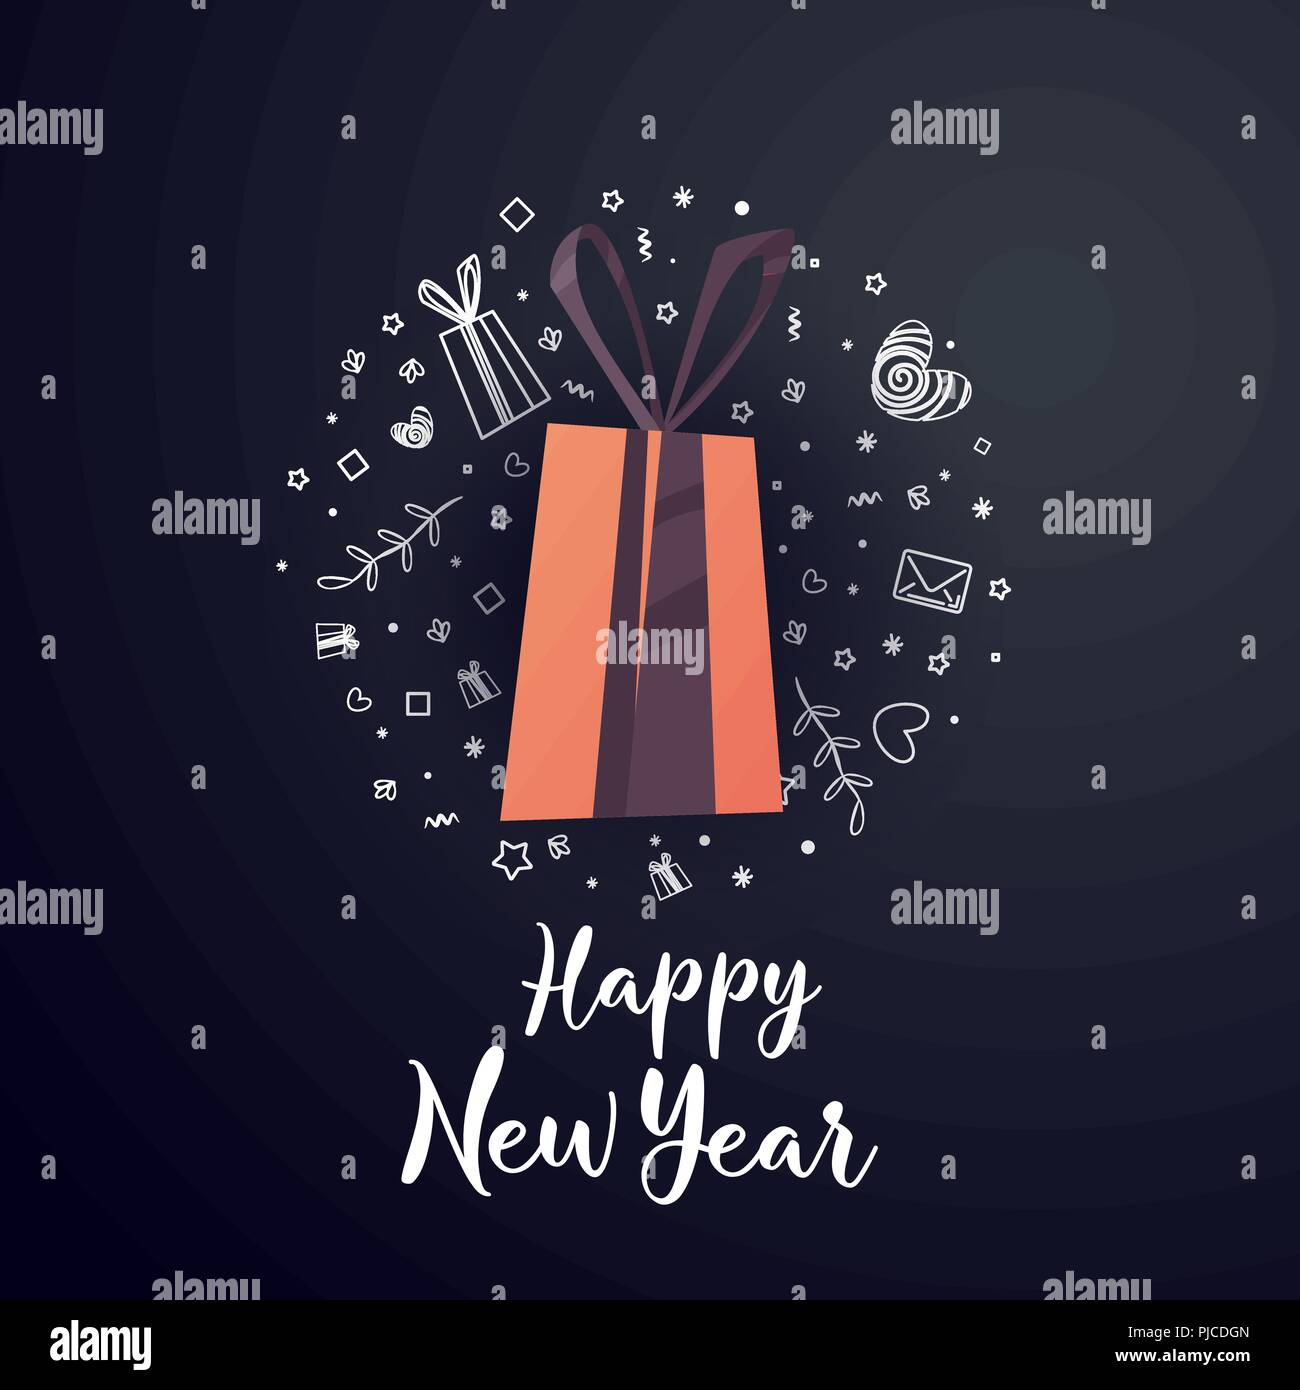 happy new year sale banner big winter sale offer shop market poster design vector illustration eps 10